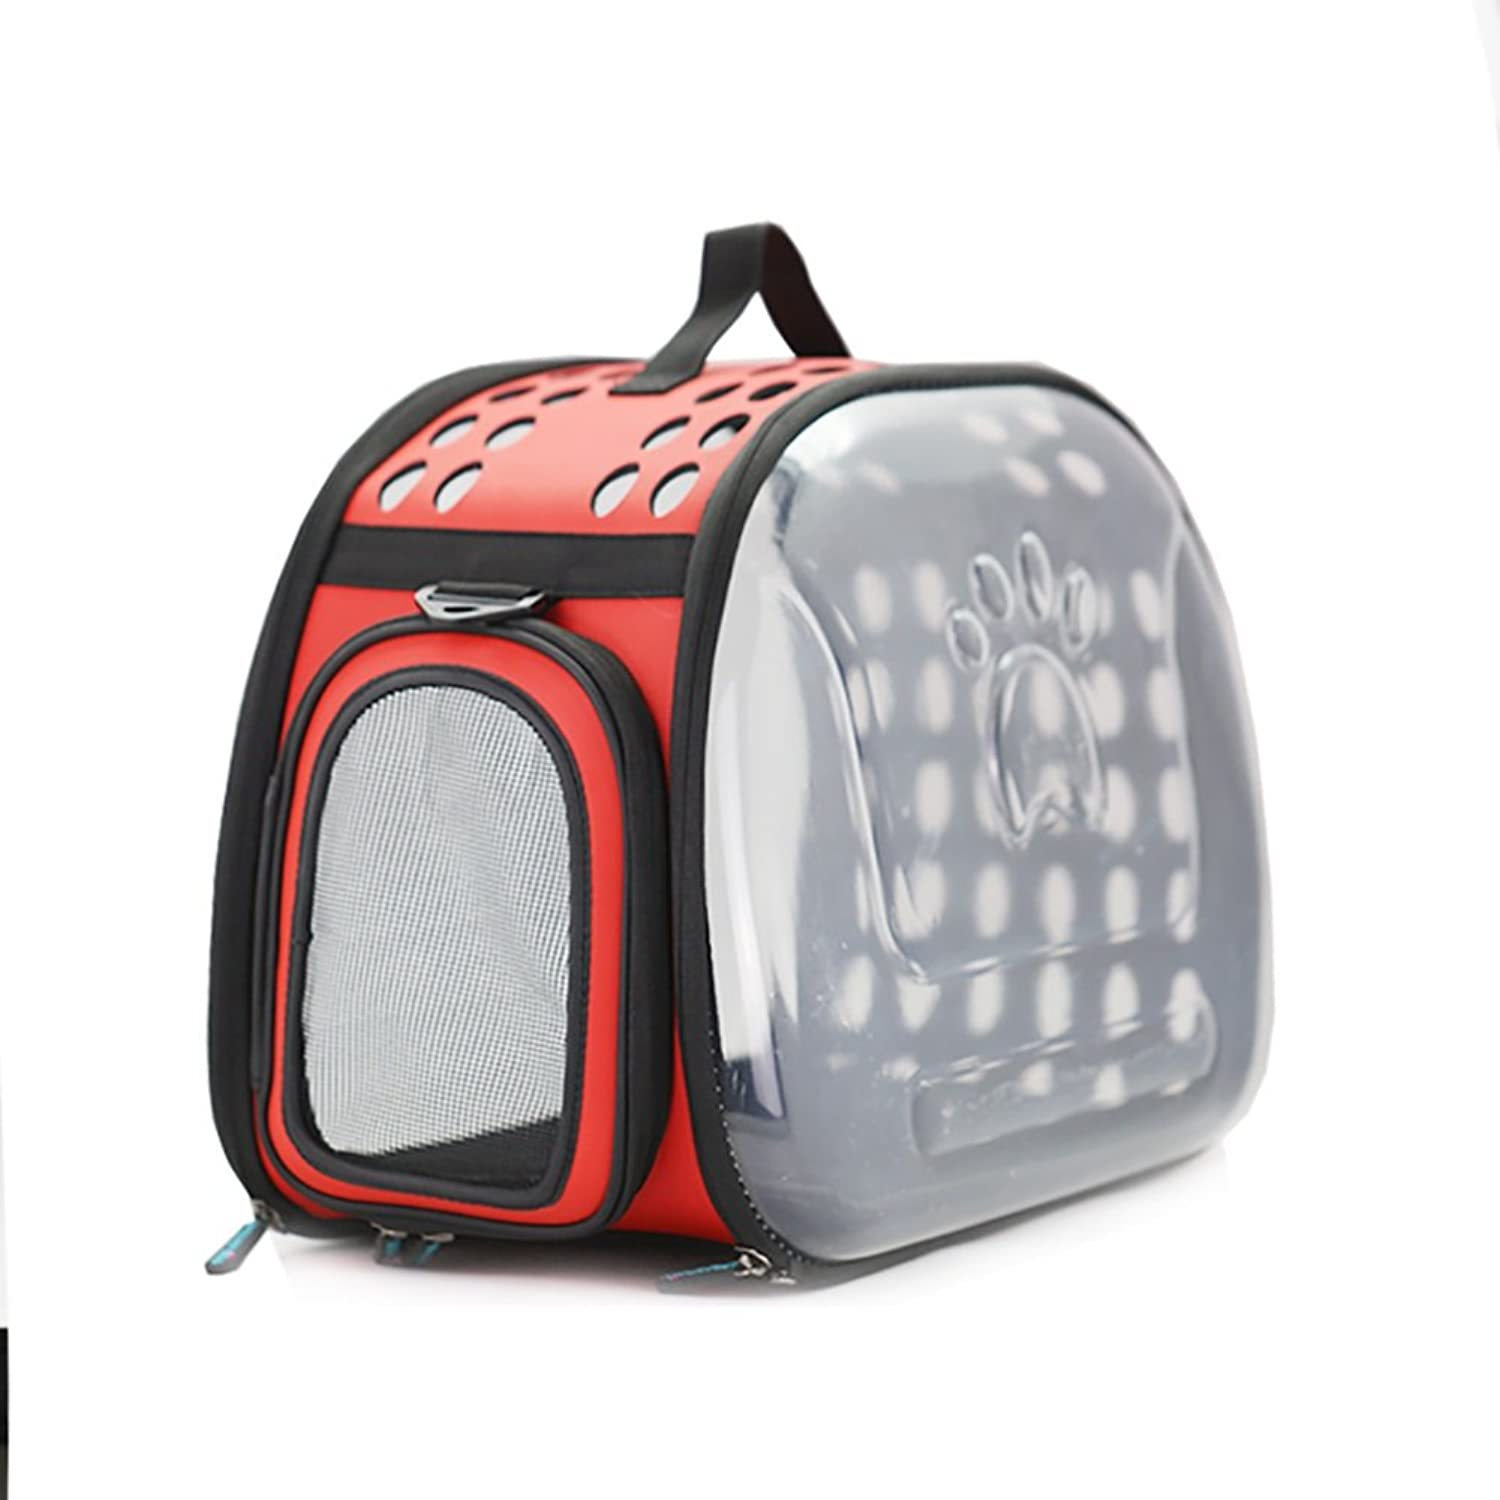 GWM Backpacks Transparent pet Carrier,Cat Travel Bag,Breathable and Lighteweight for Cat, Rabbit and Other Small Medium Sized Pets,28  45  32cm (color   Red)